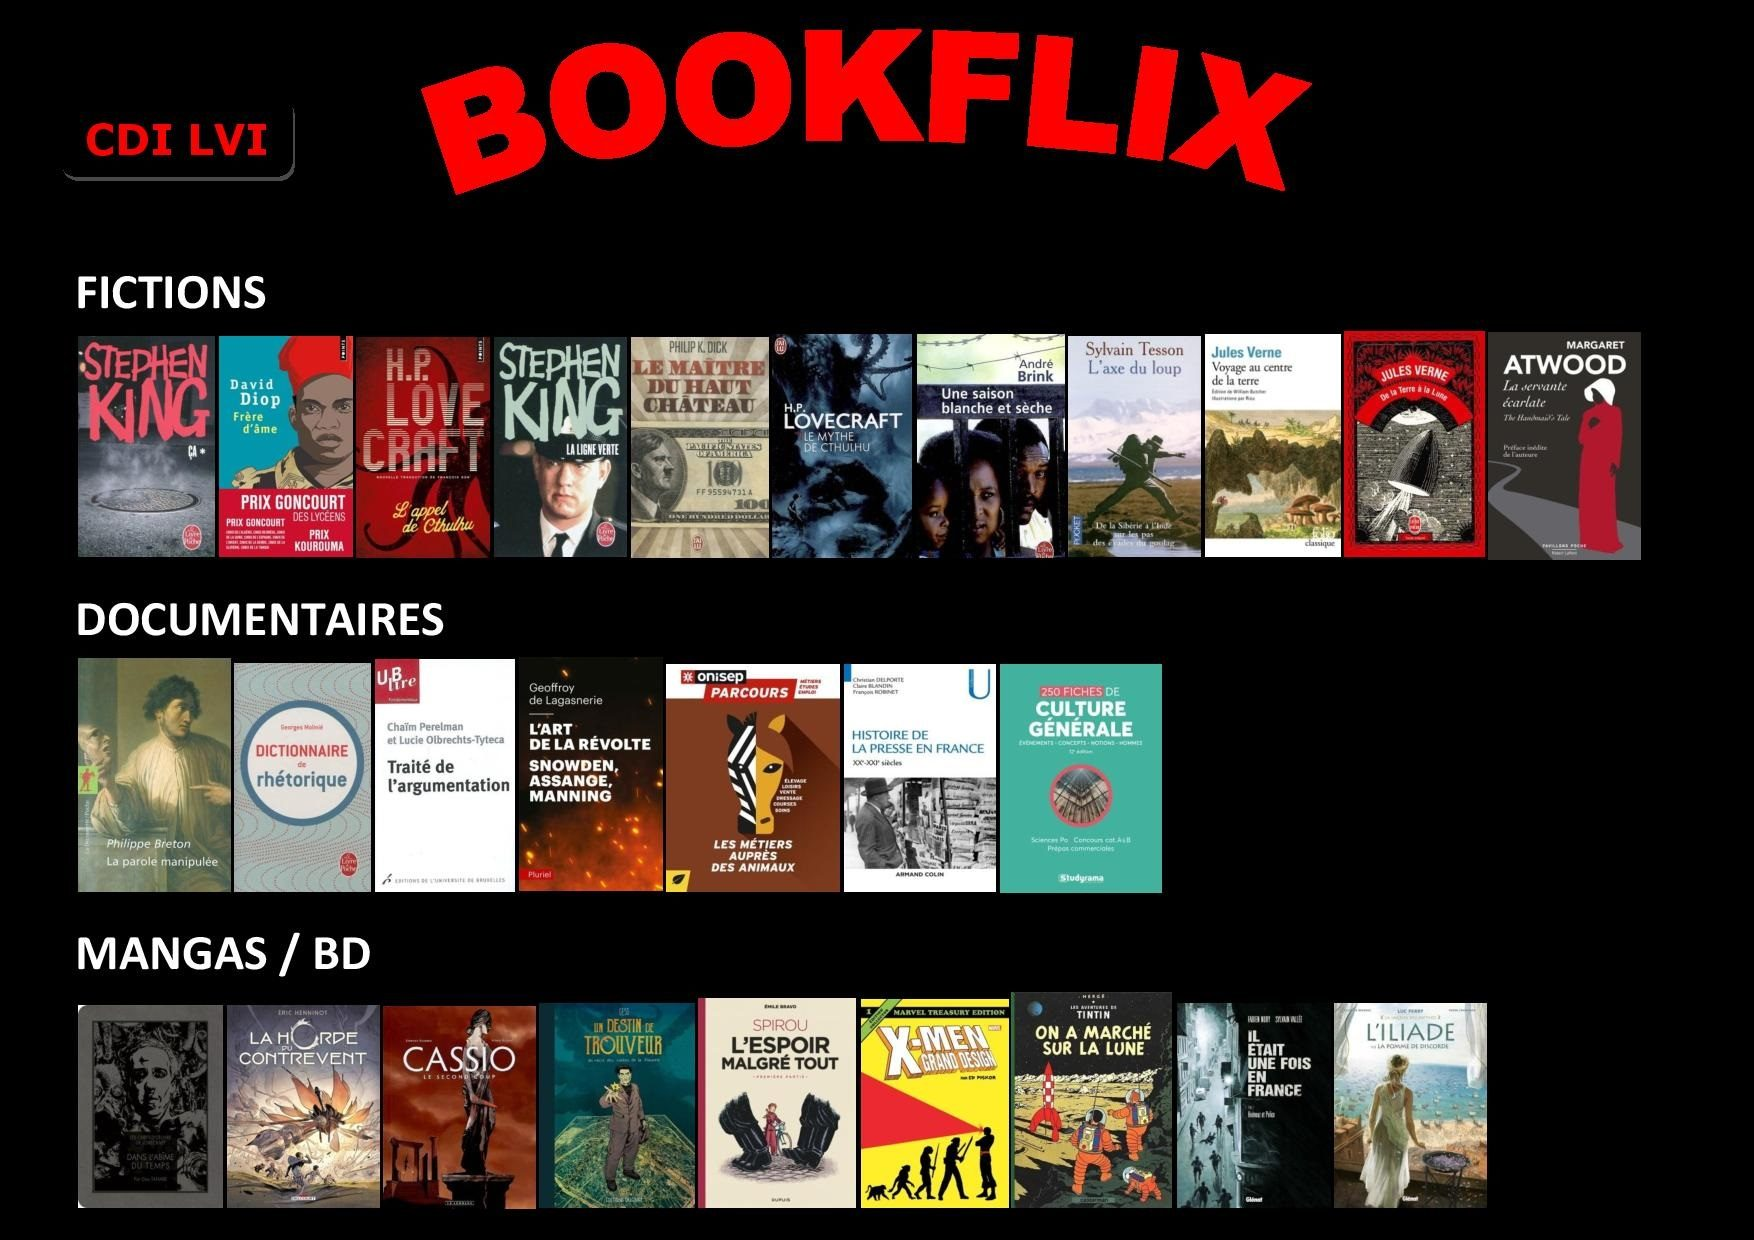 BOOKFLIX-page-001-2.jpg